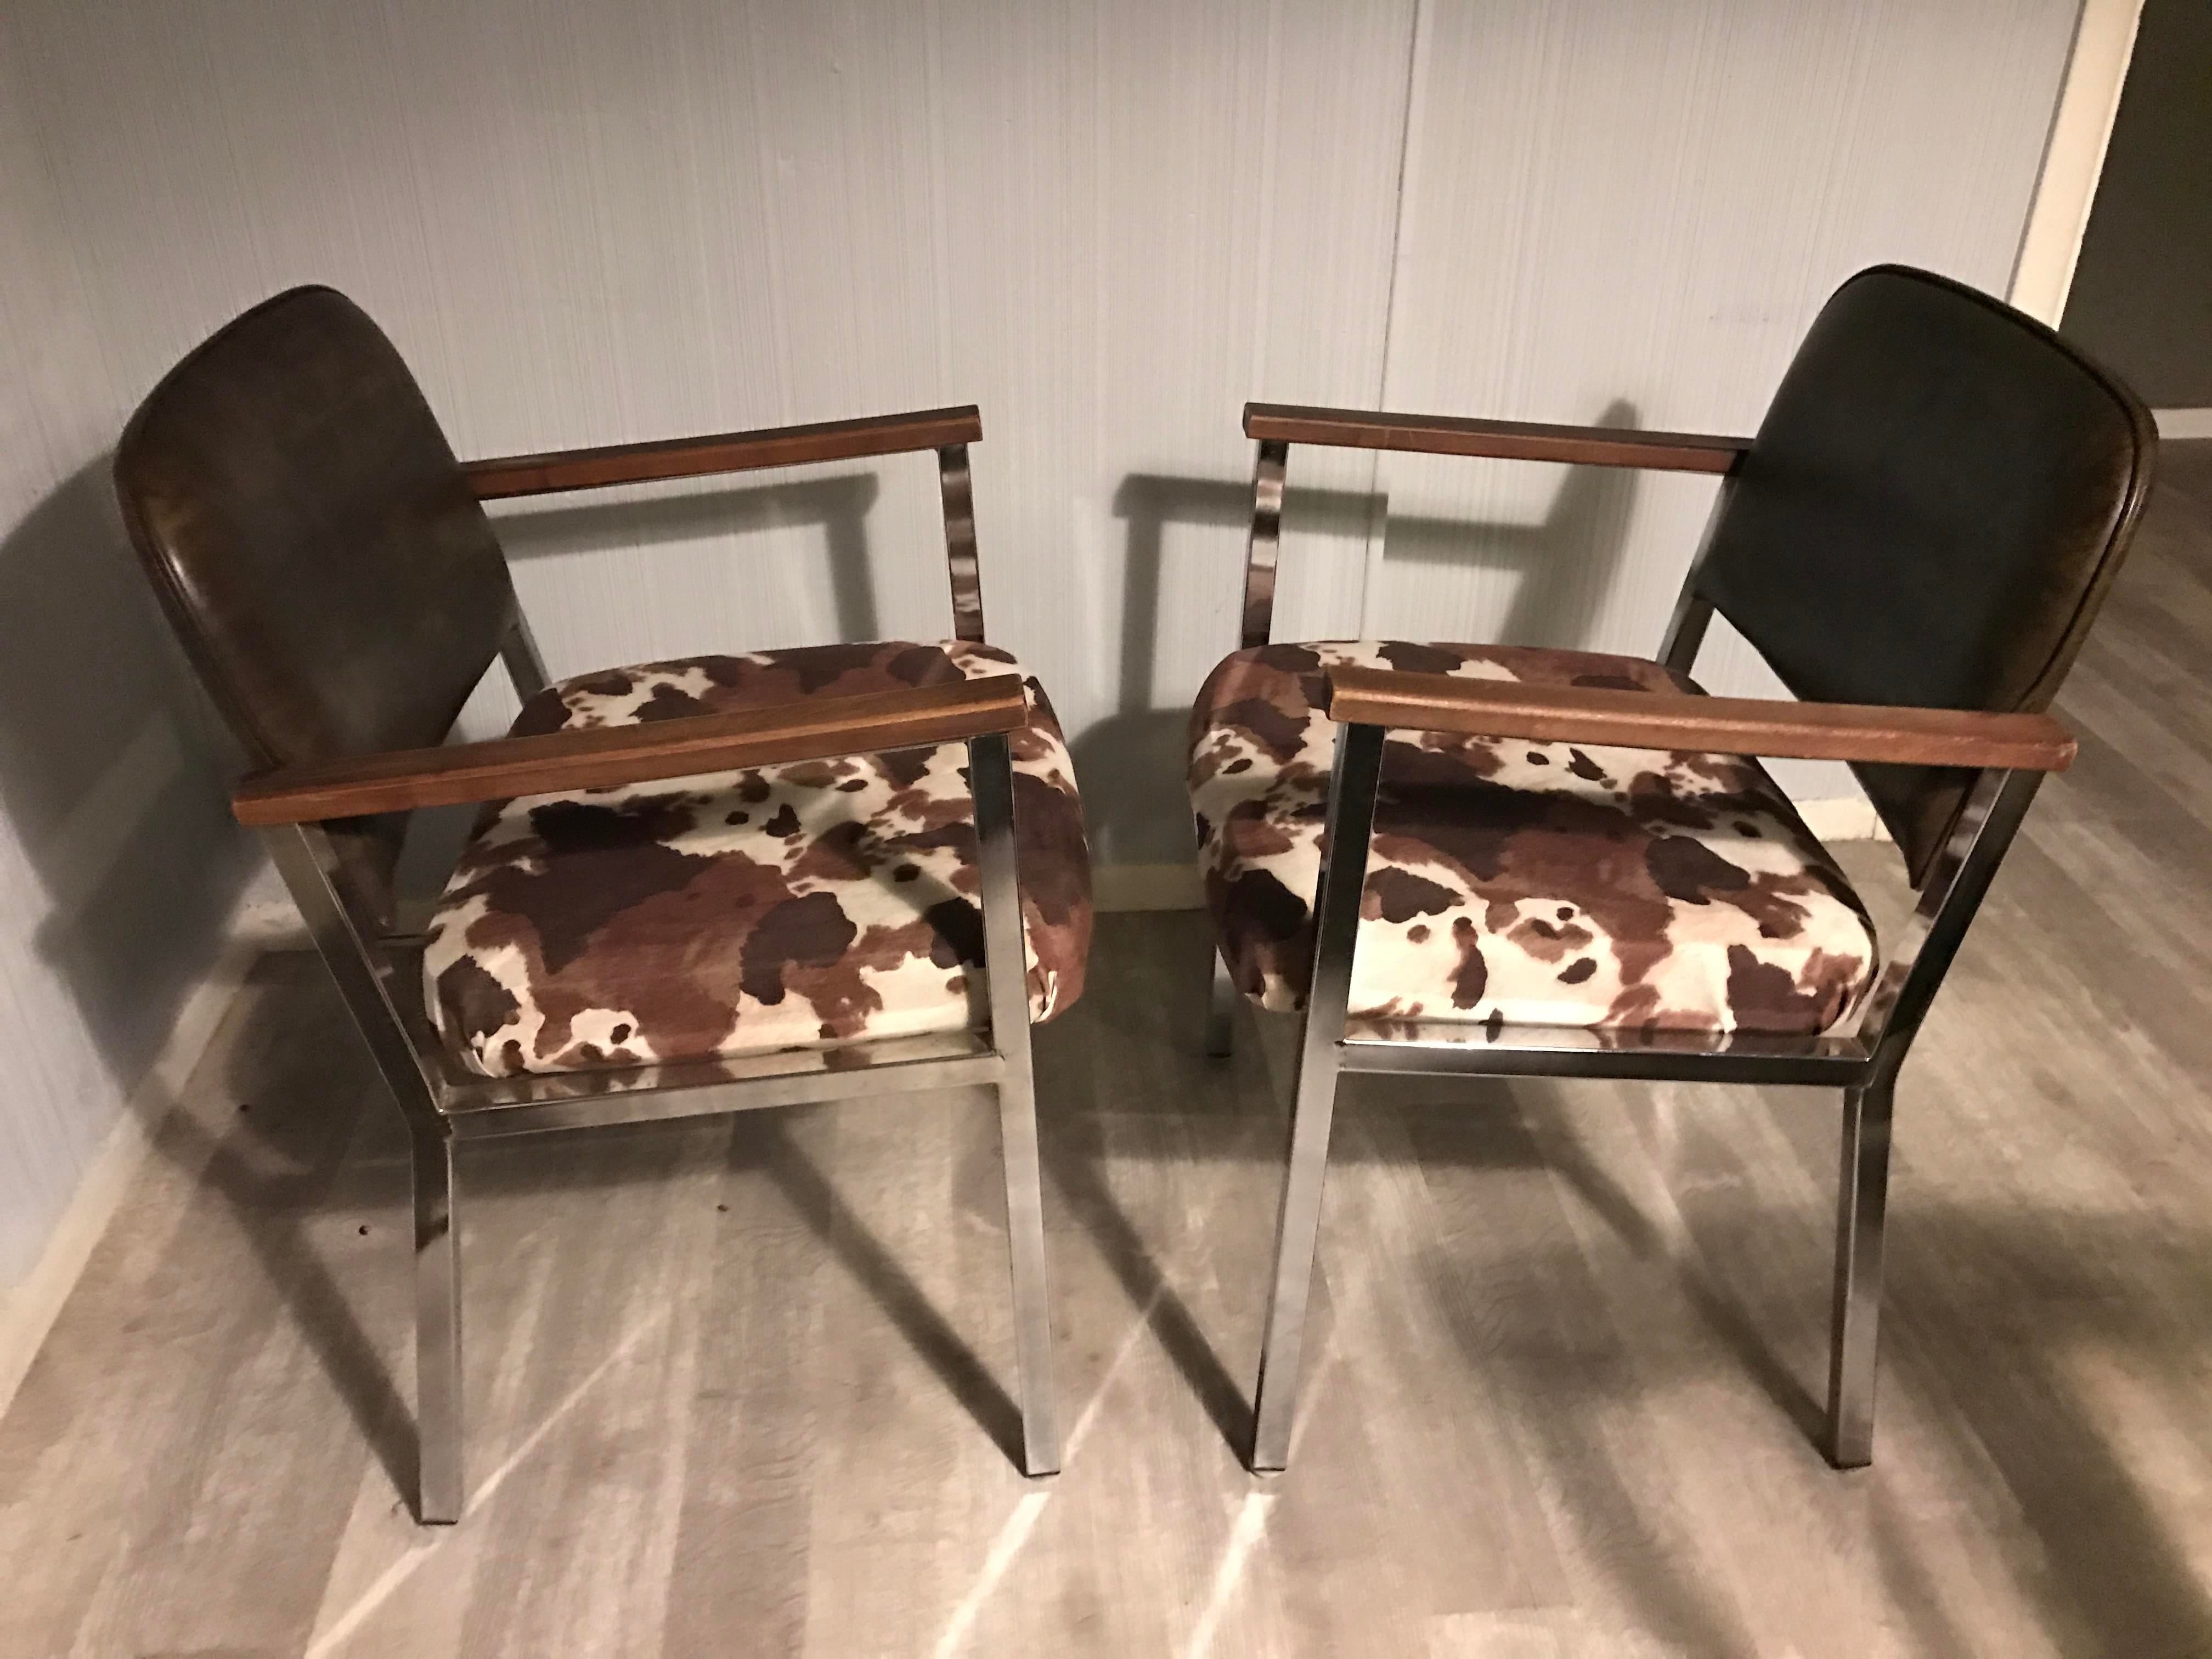 Ordinaire Mid Century Modern Faux Cowhide Chairs   Selling As A Pair   Image 2 Of